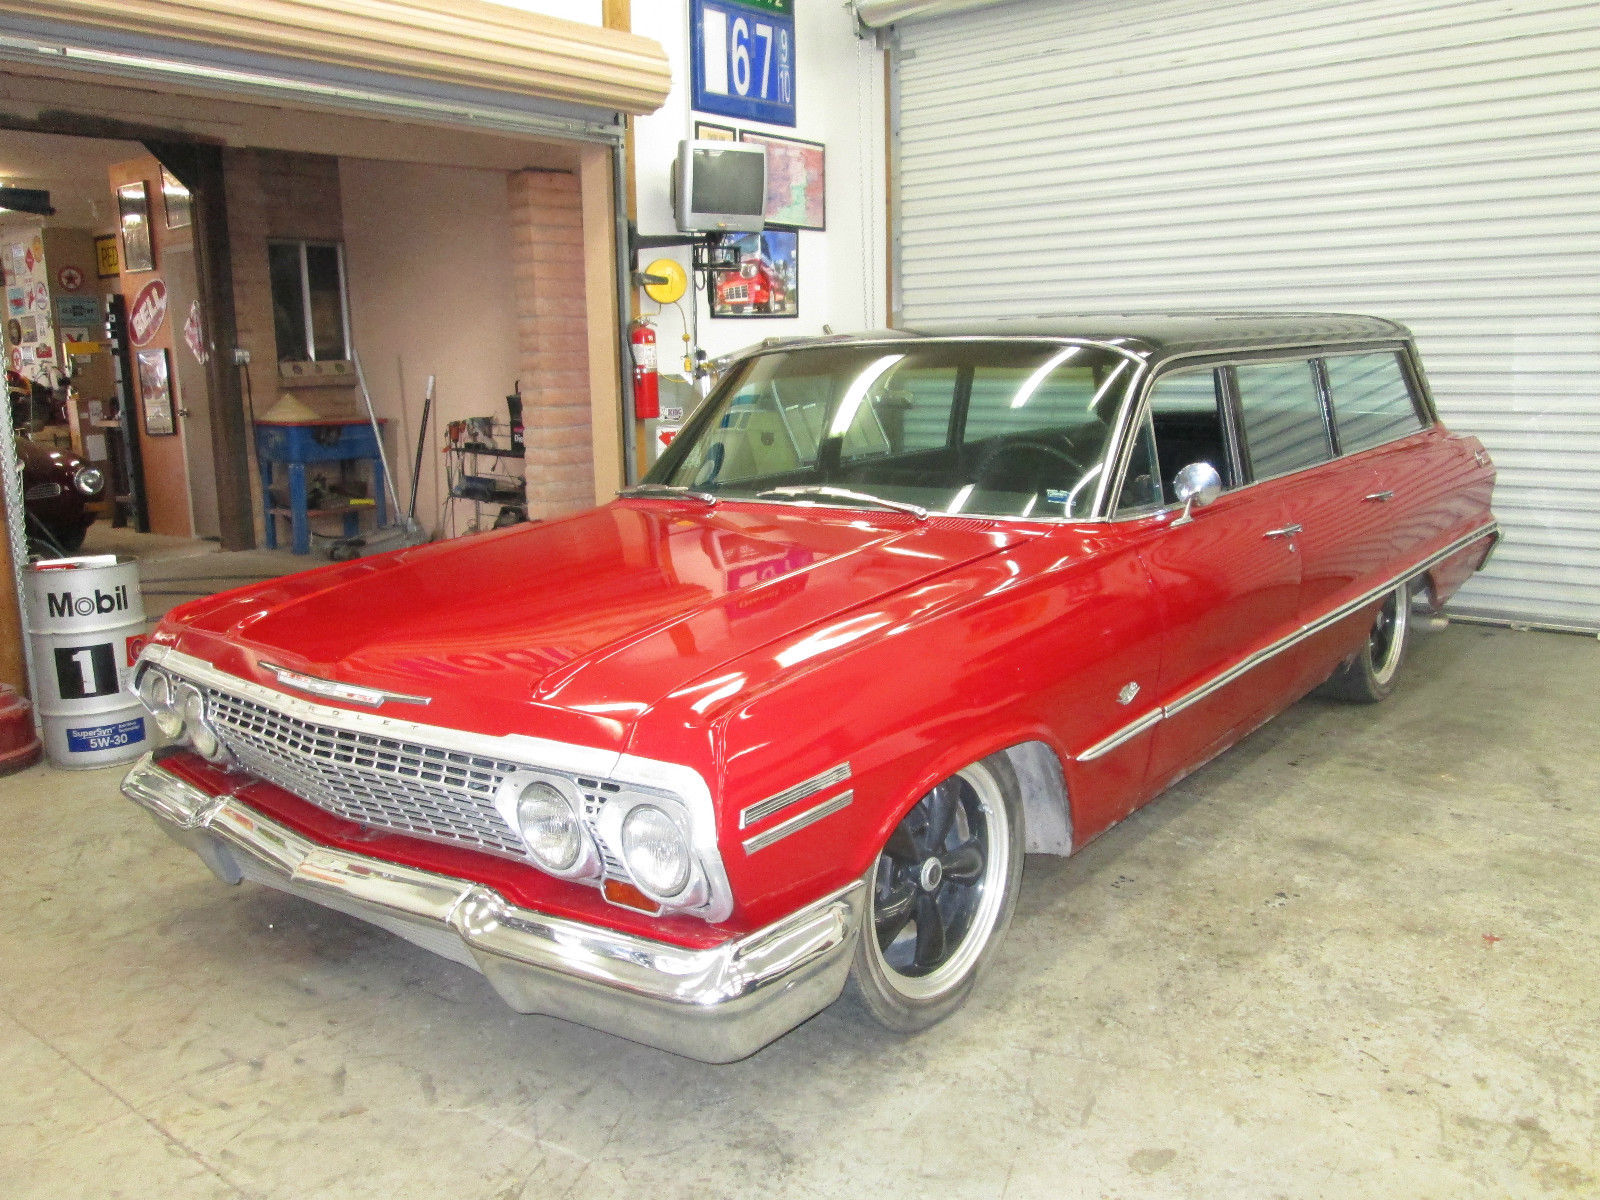 1963 chevy impala station wagon stationwagon fourdoor four door for sale in tucson arizona. Black Bedroom Furniture Sets. Home Design Ideas